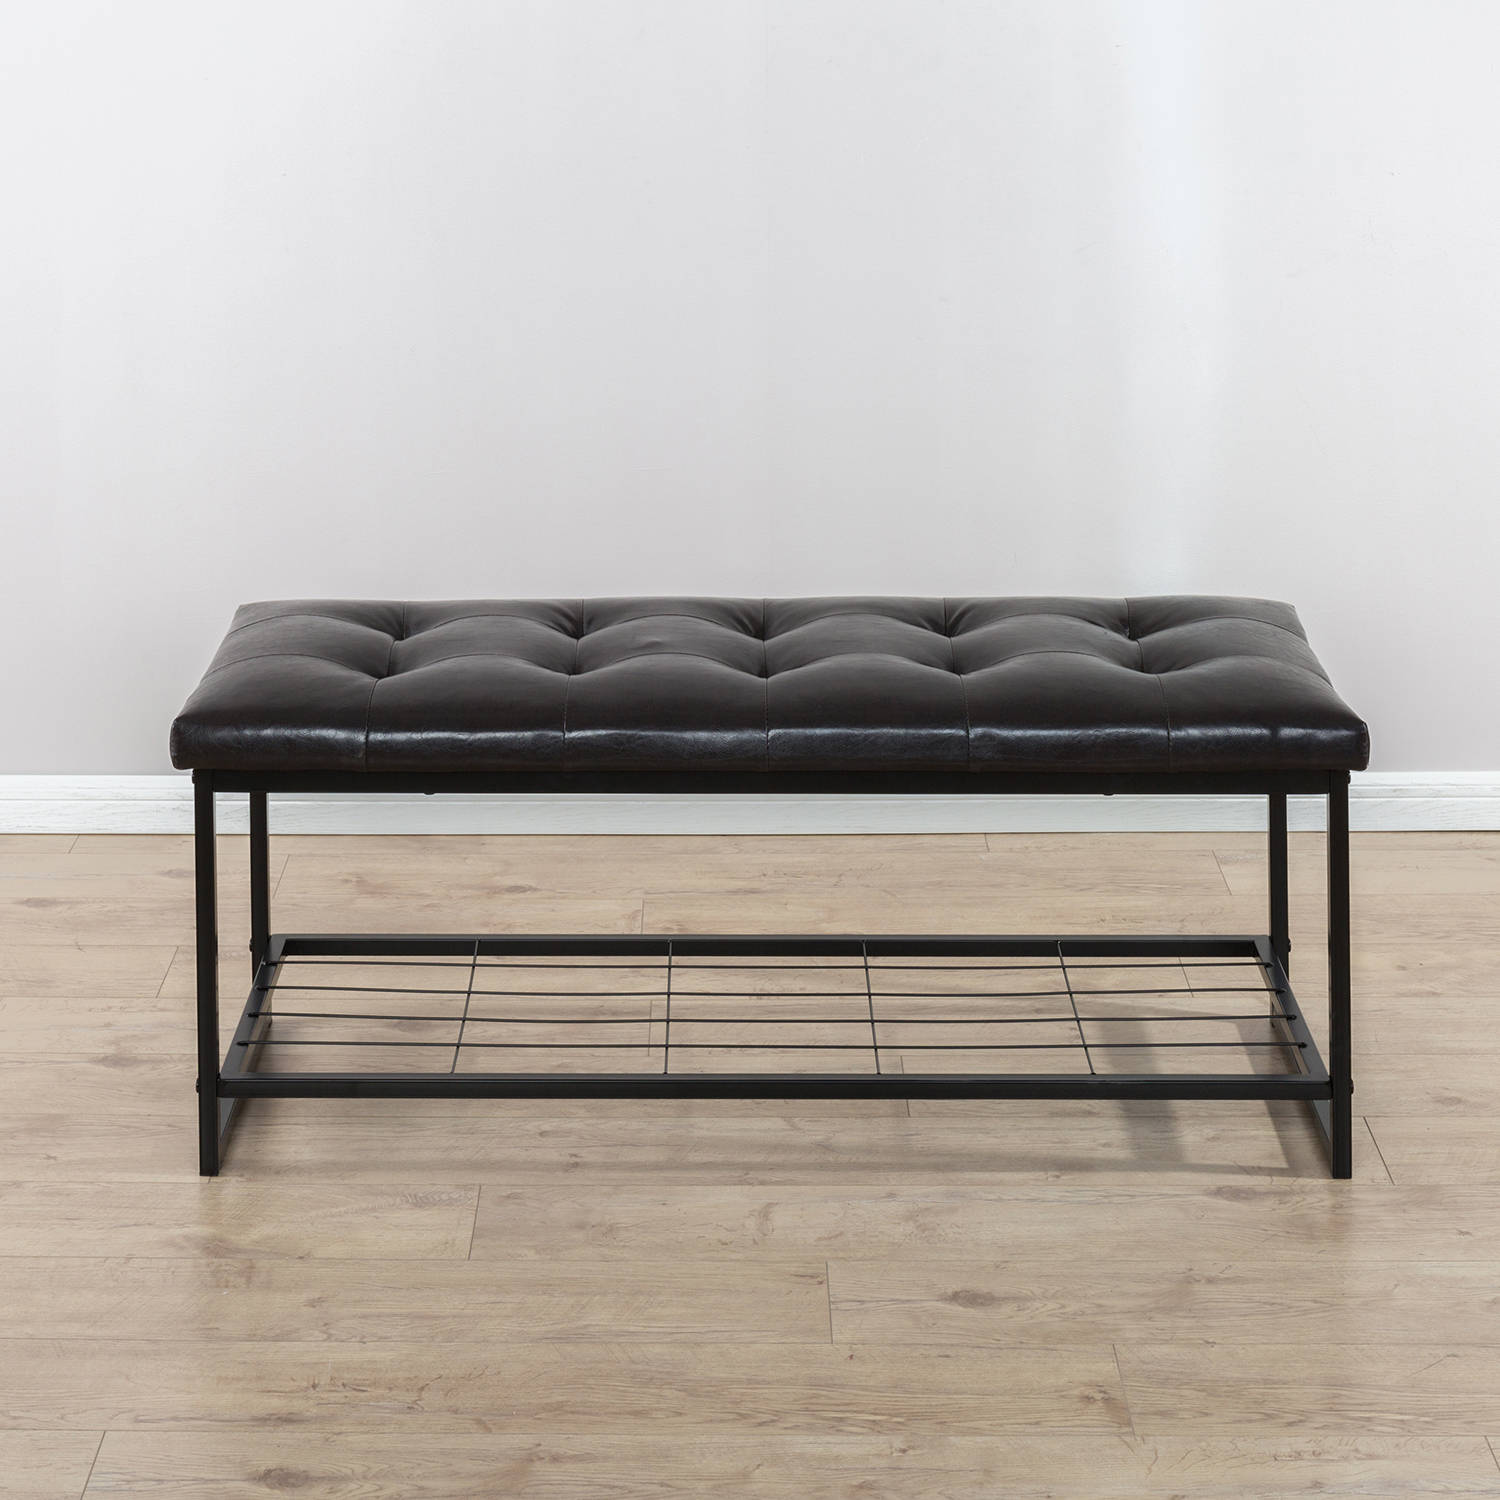 Zinus Faux Leather 48 Inch Tufted Bench with Storage Shelf